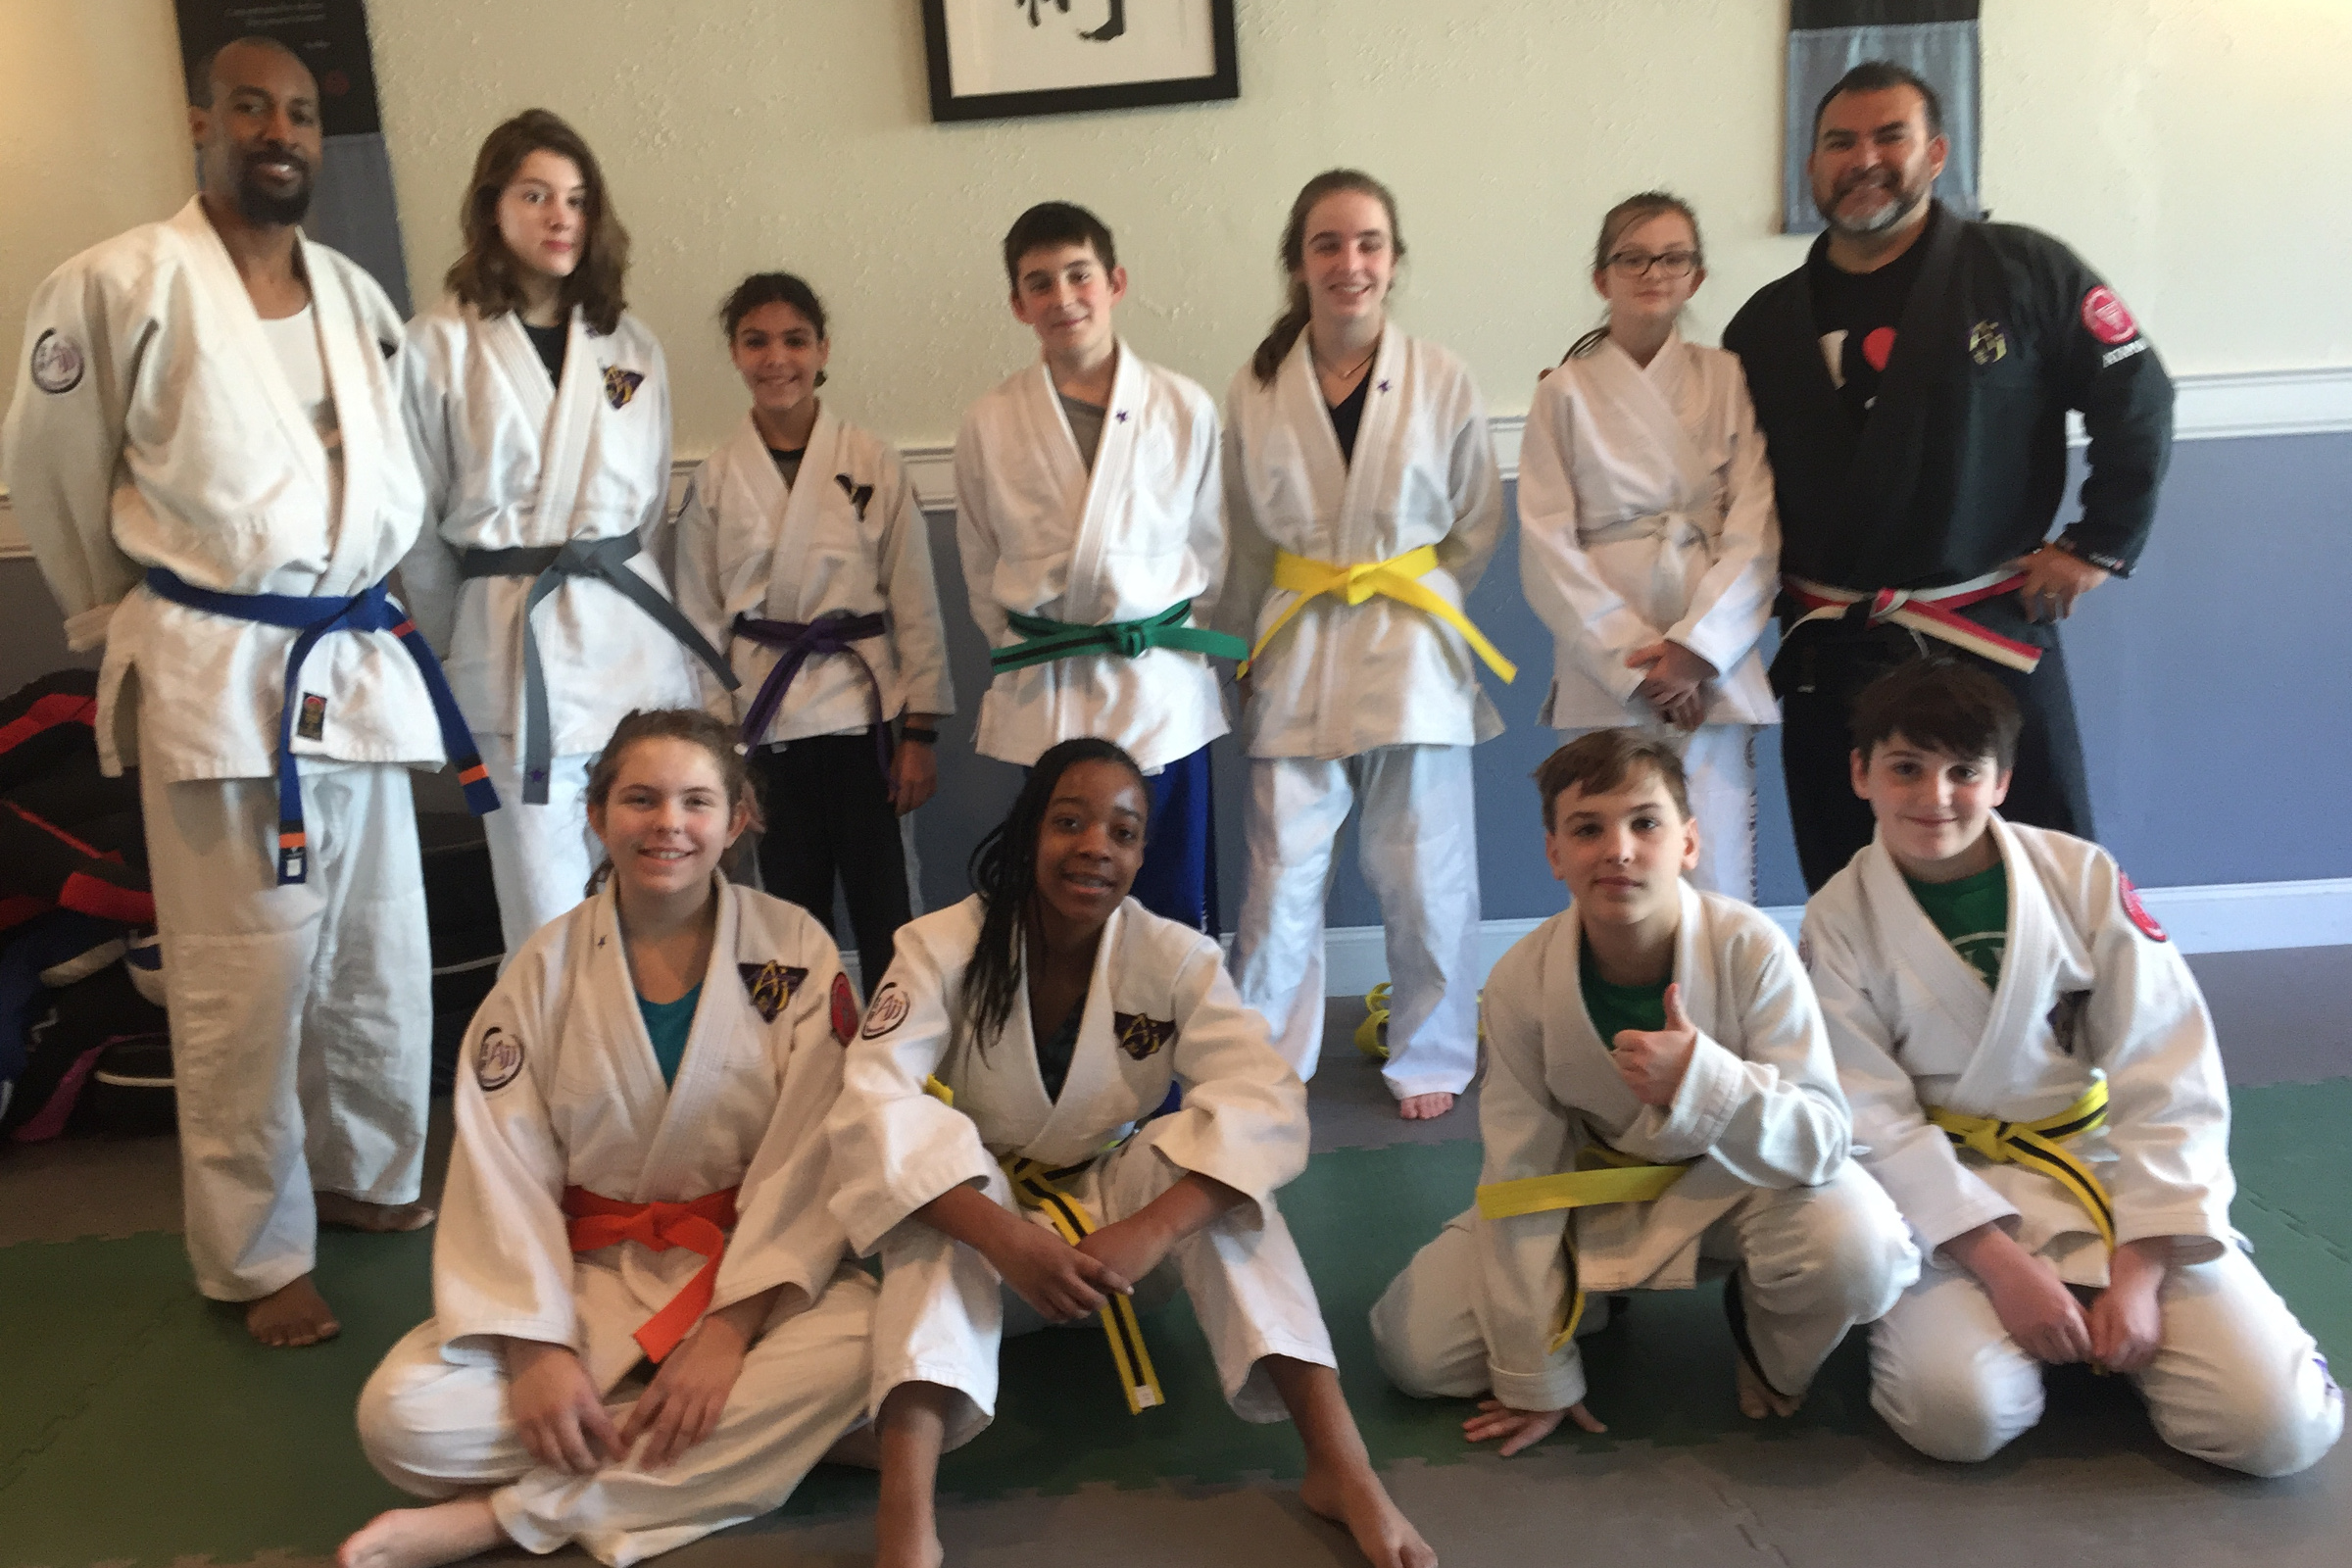 For Young Adults - American Jiu Jitsu gives our Young Adults the confidence they need to be themselves. We encourage our students to express themselves and to continually strive to be a better person.Training for Young Adults helps develop both leadership and team skills necessary for navigating Middle and High School.